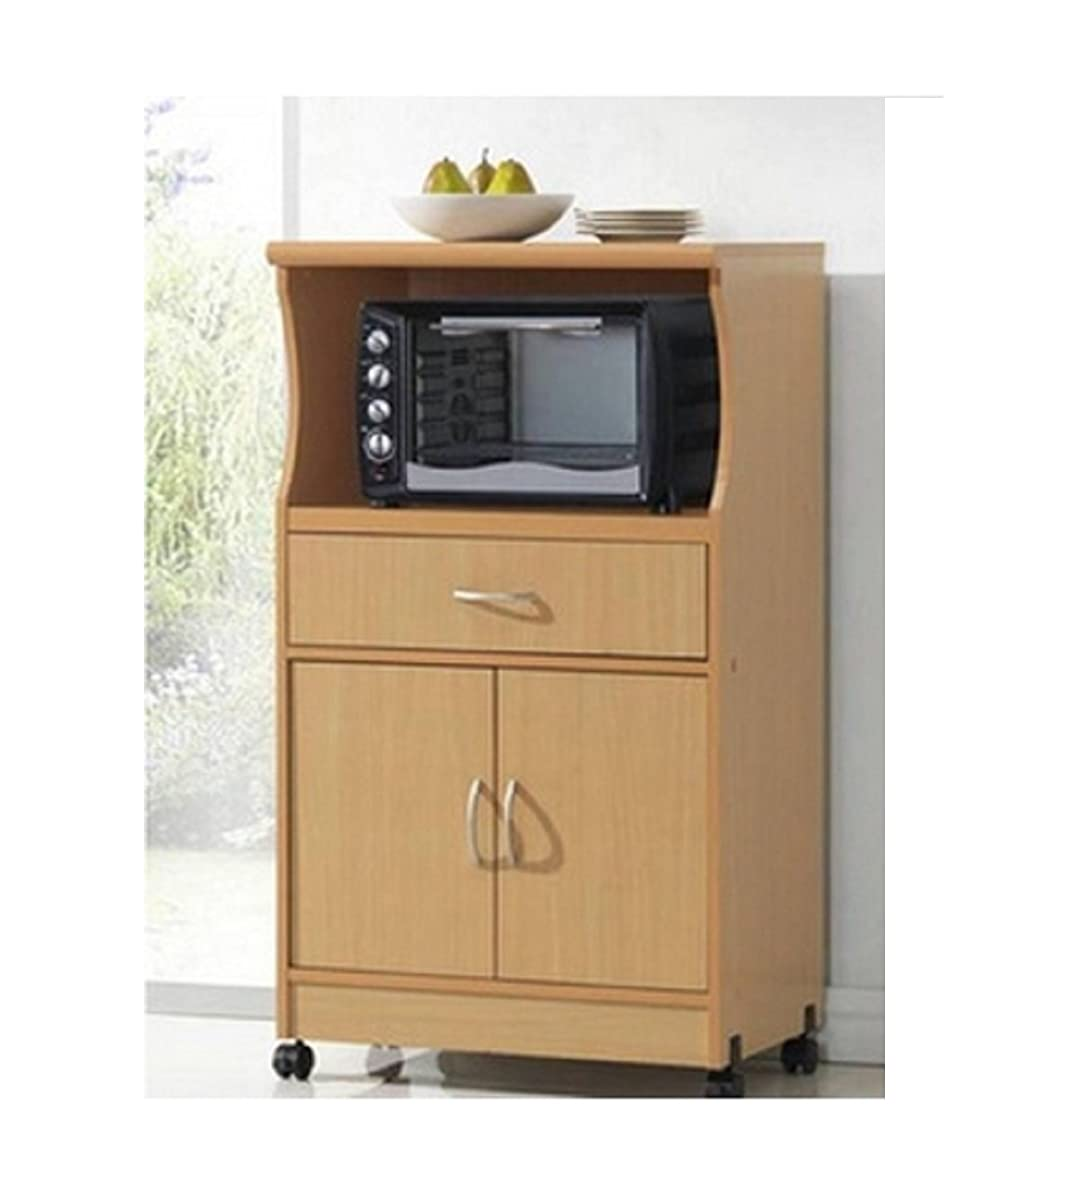 Microwave Cart Stand - Beech Finish - One Shelf for the Microwave and Another Shelf Above Plus a Drawer and Cabinet Below